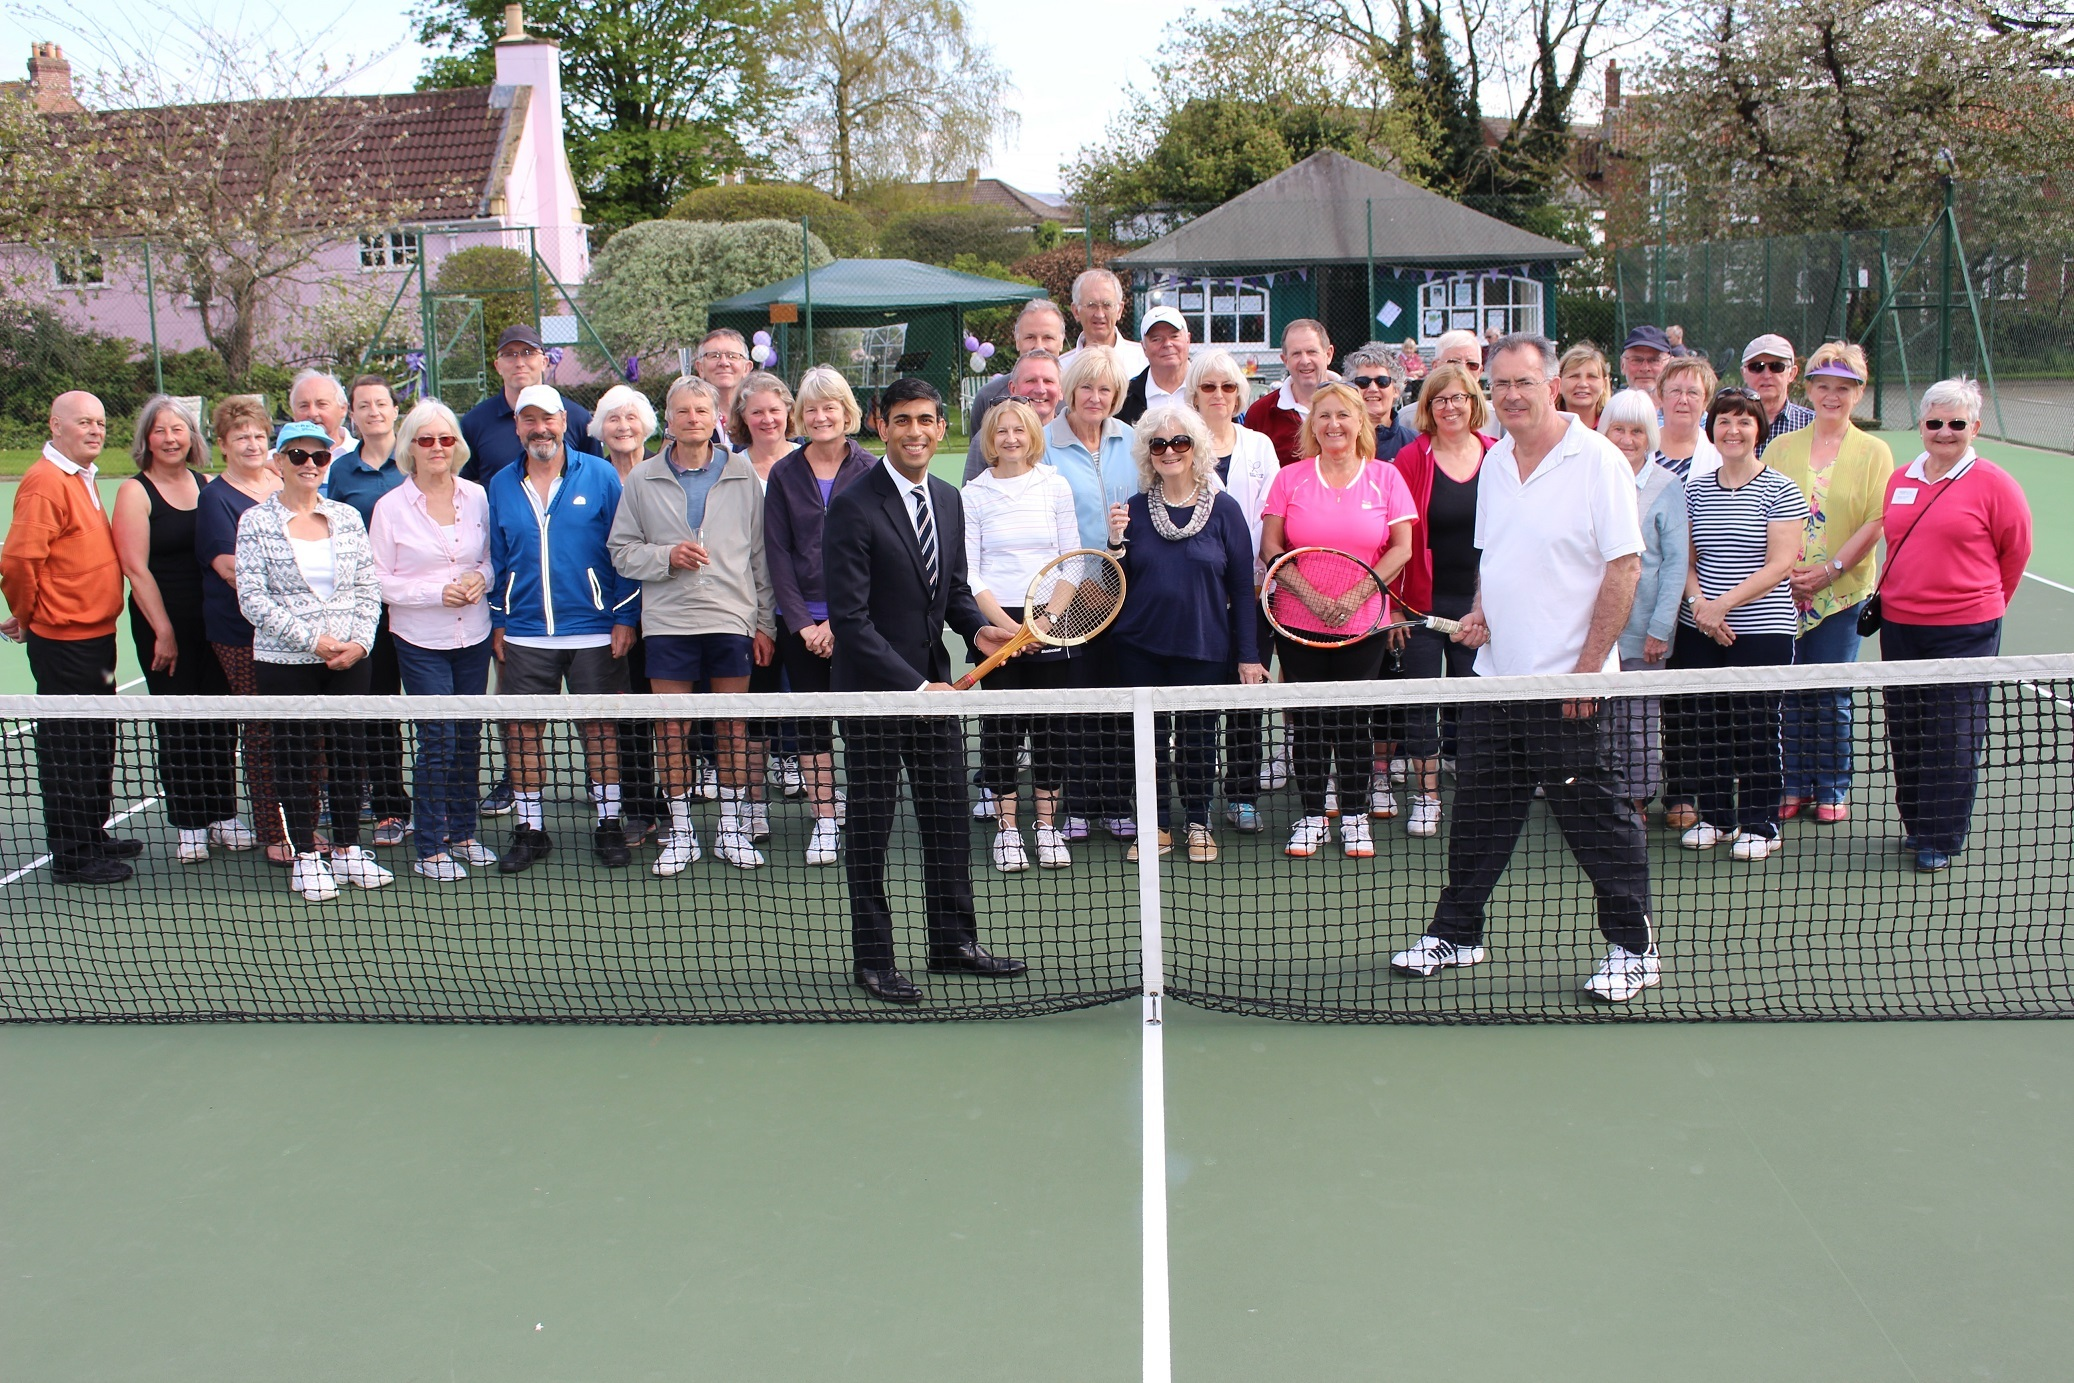 UNGRADE: Rishi Sunak MP with Dr Tim Ryan, chairman of Great Ayton Tennis Club, and club members and supporters on the new courts